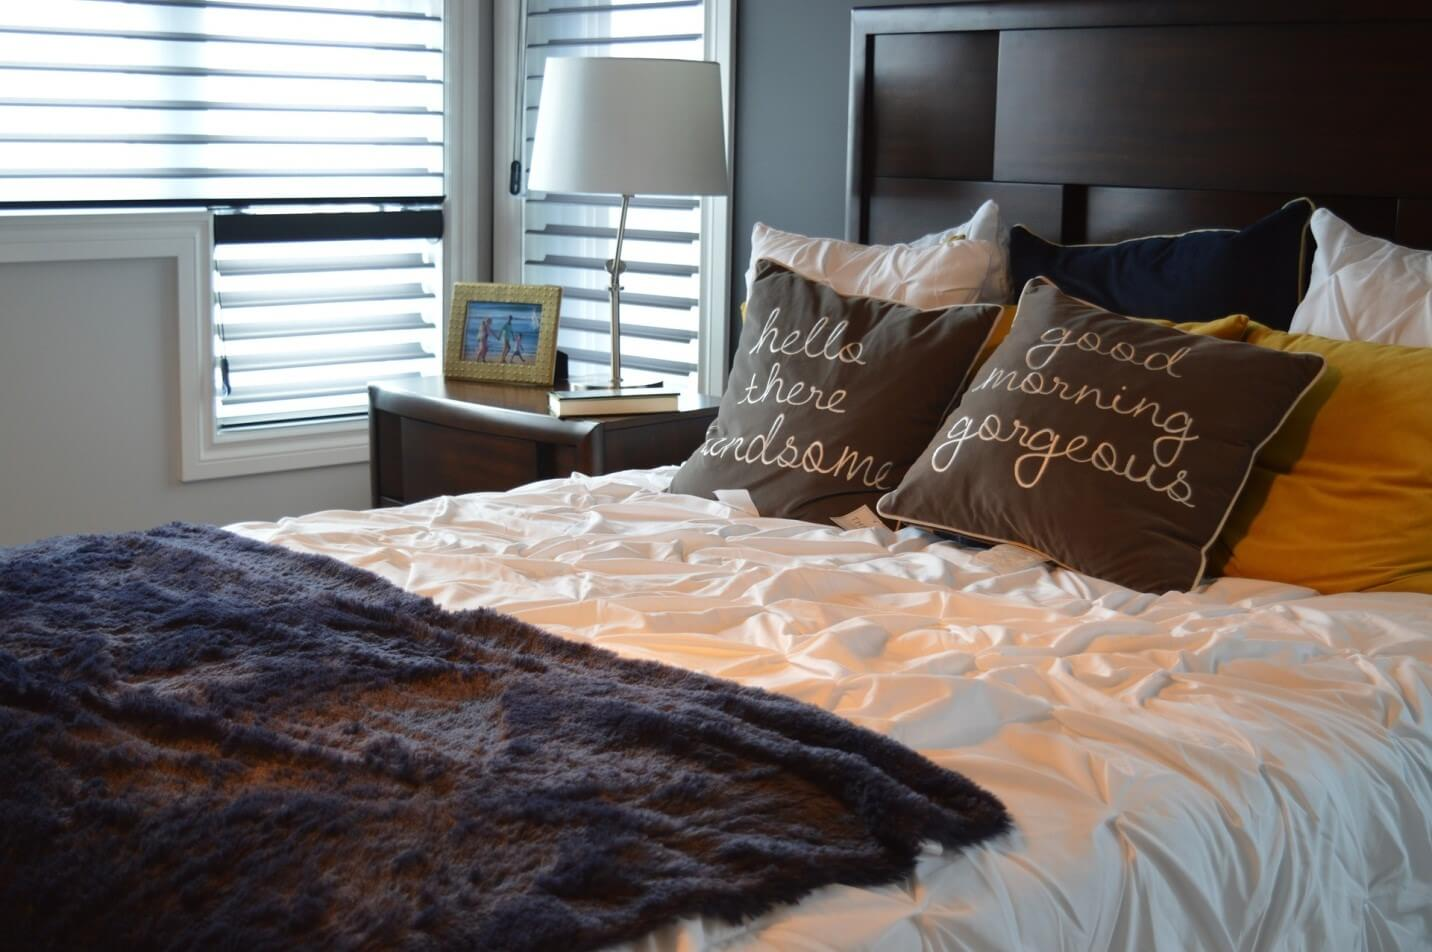 4 steps to get rid of bed bugs